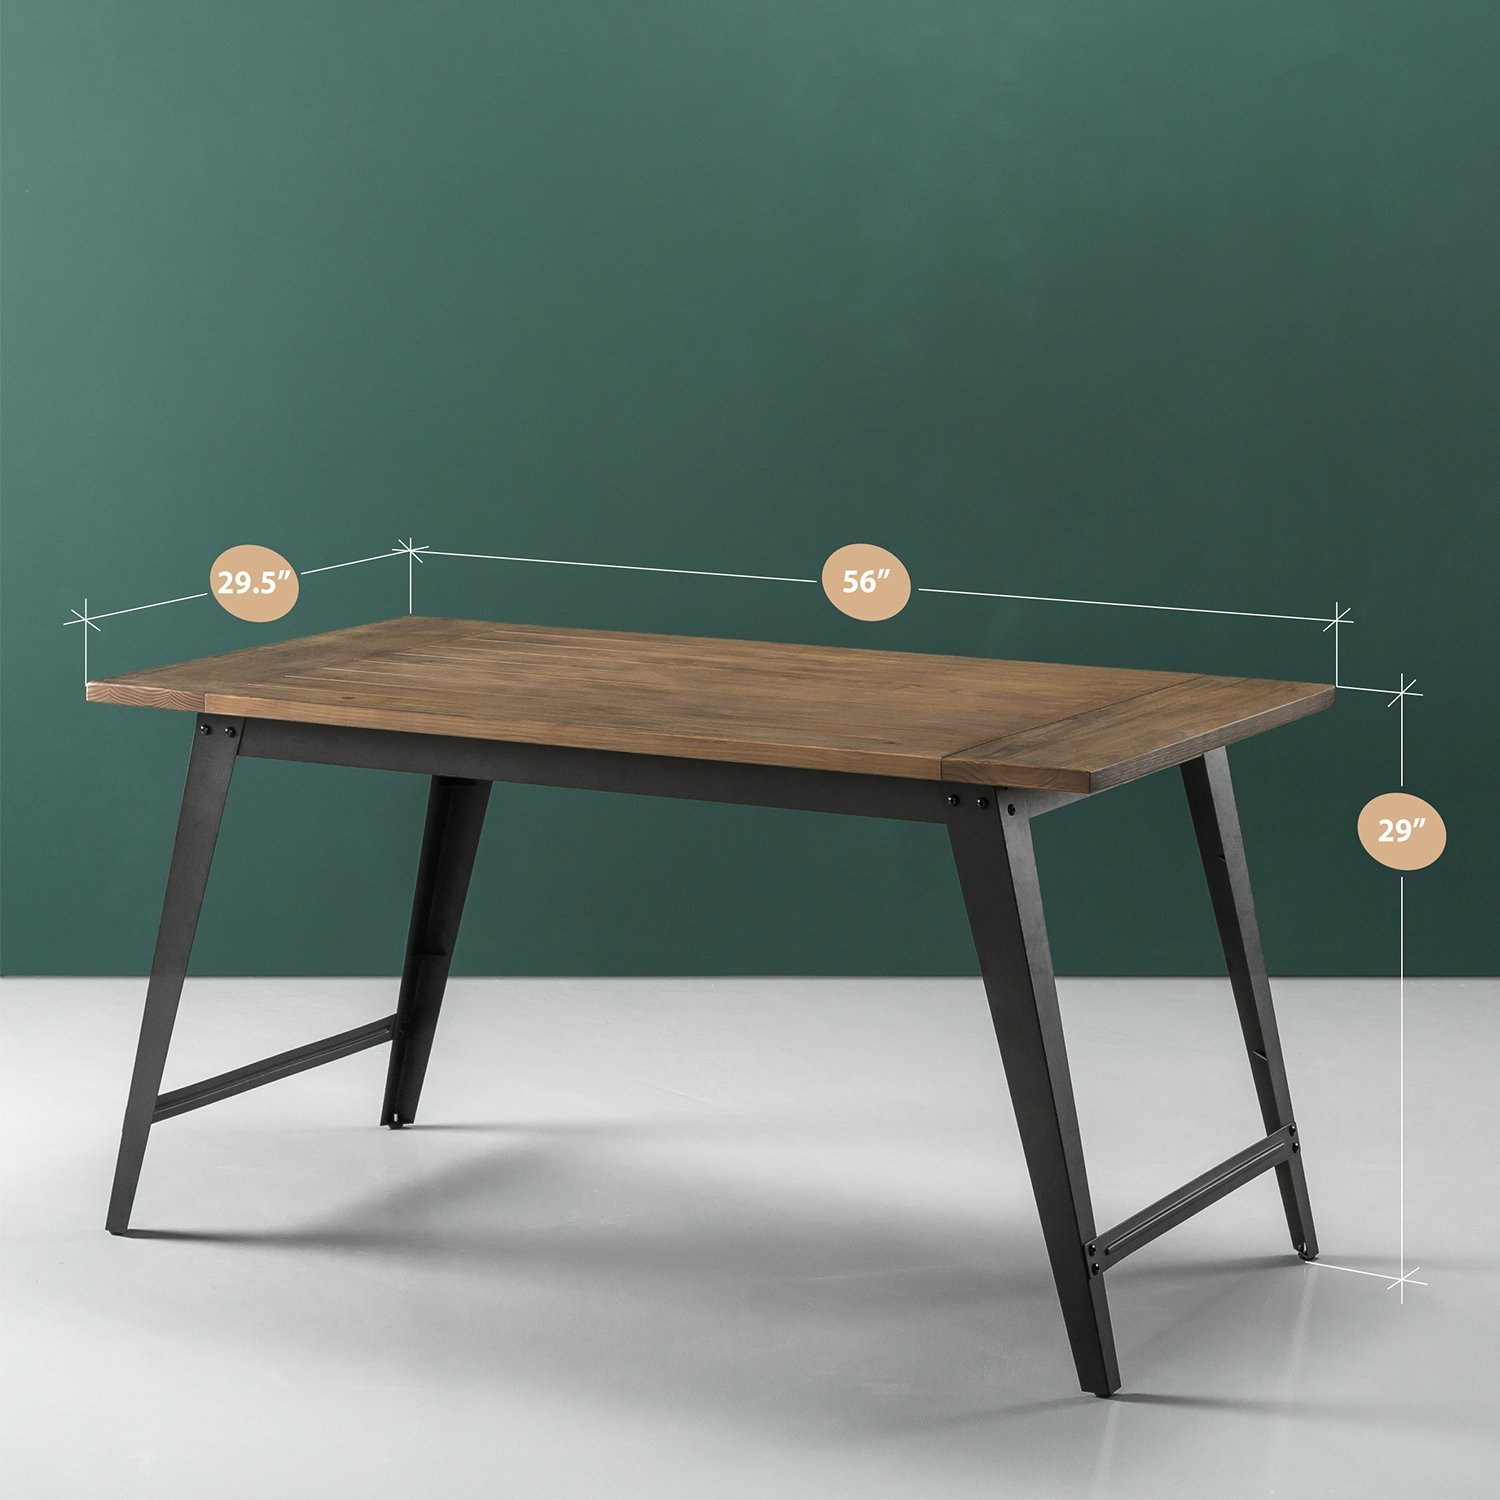 Zinus Donna Wood and Metal Dining Table by Zinus (Image #2)